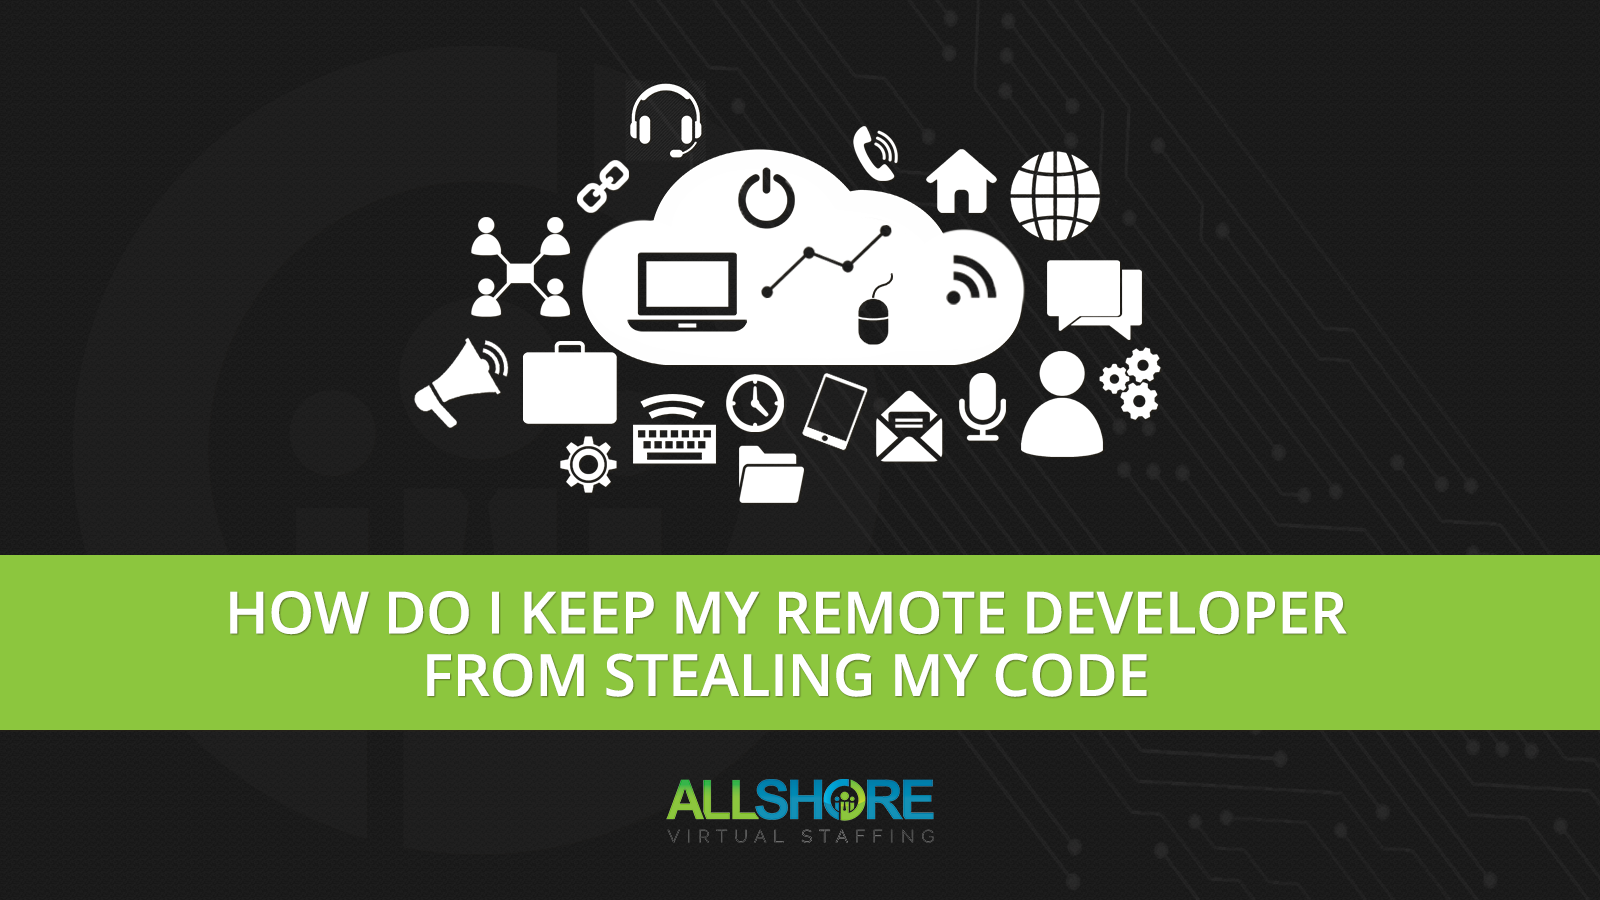 How do I keep my remote developer from stealing my code?